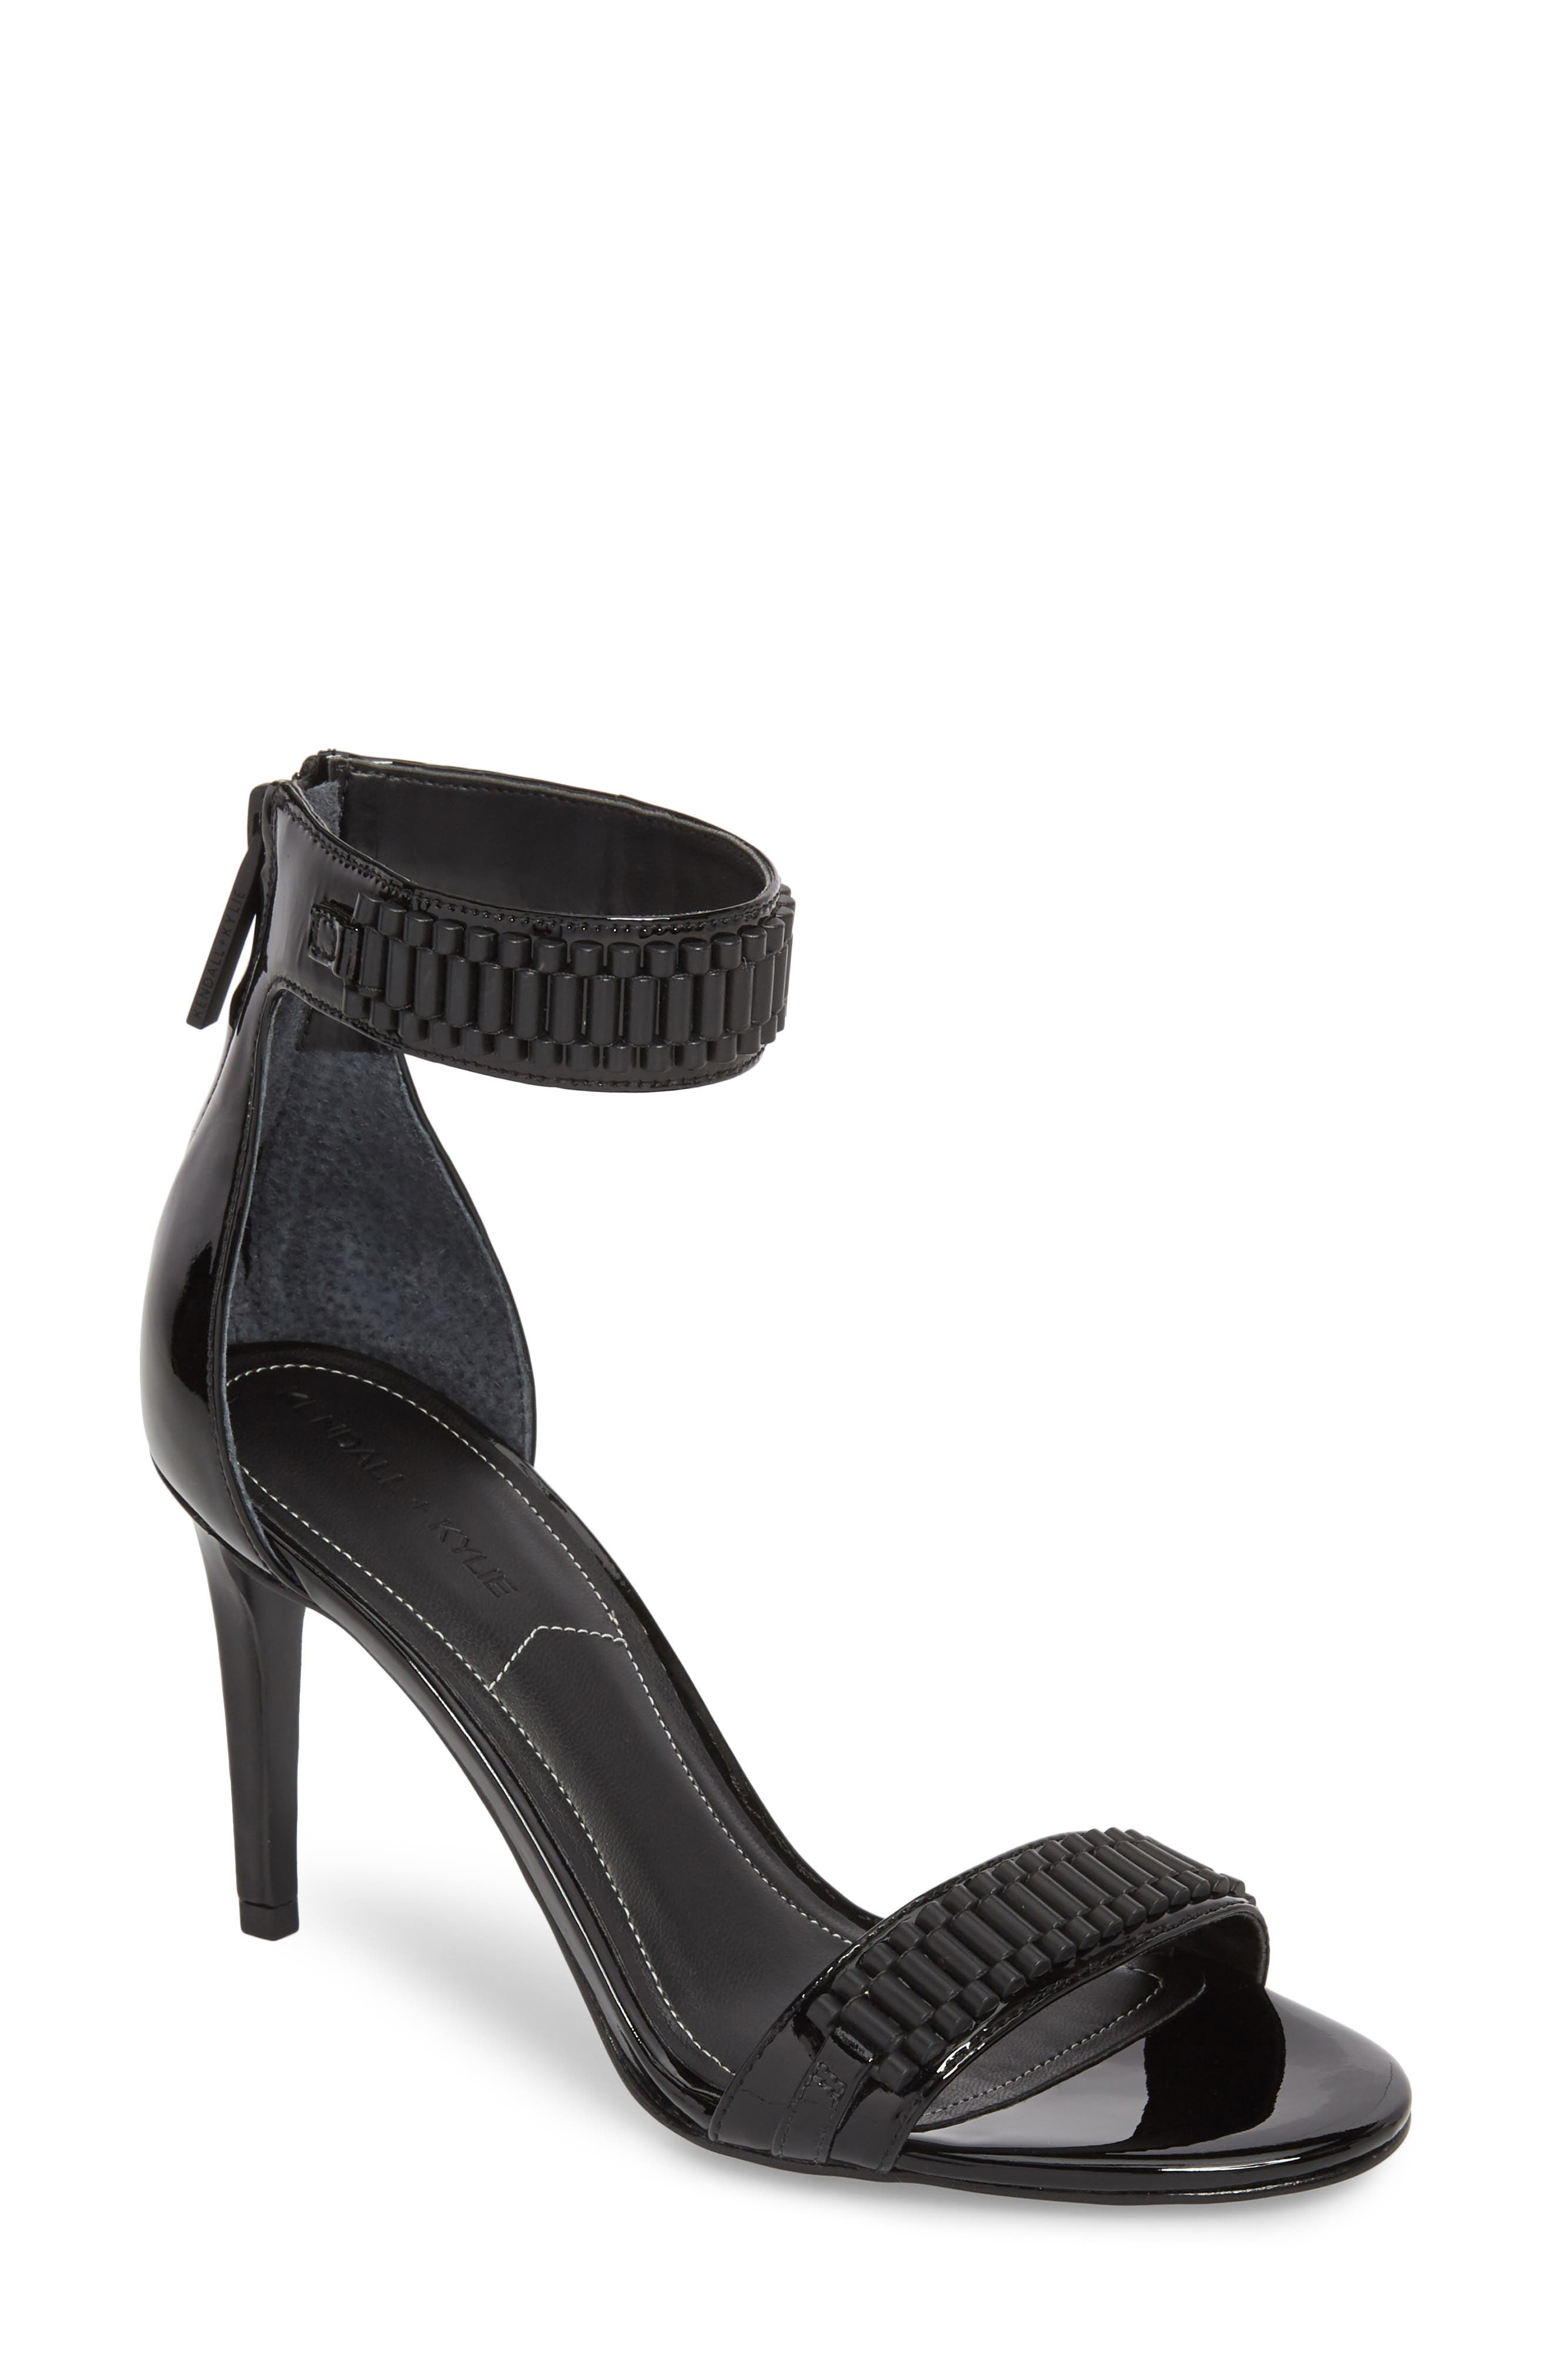 gloss dressed img ford la zip heels tom black size open products toe high sandals get